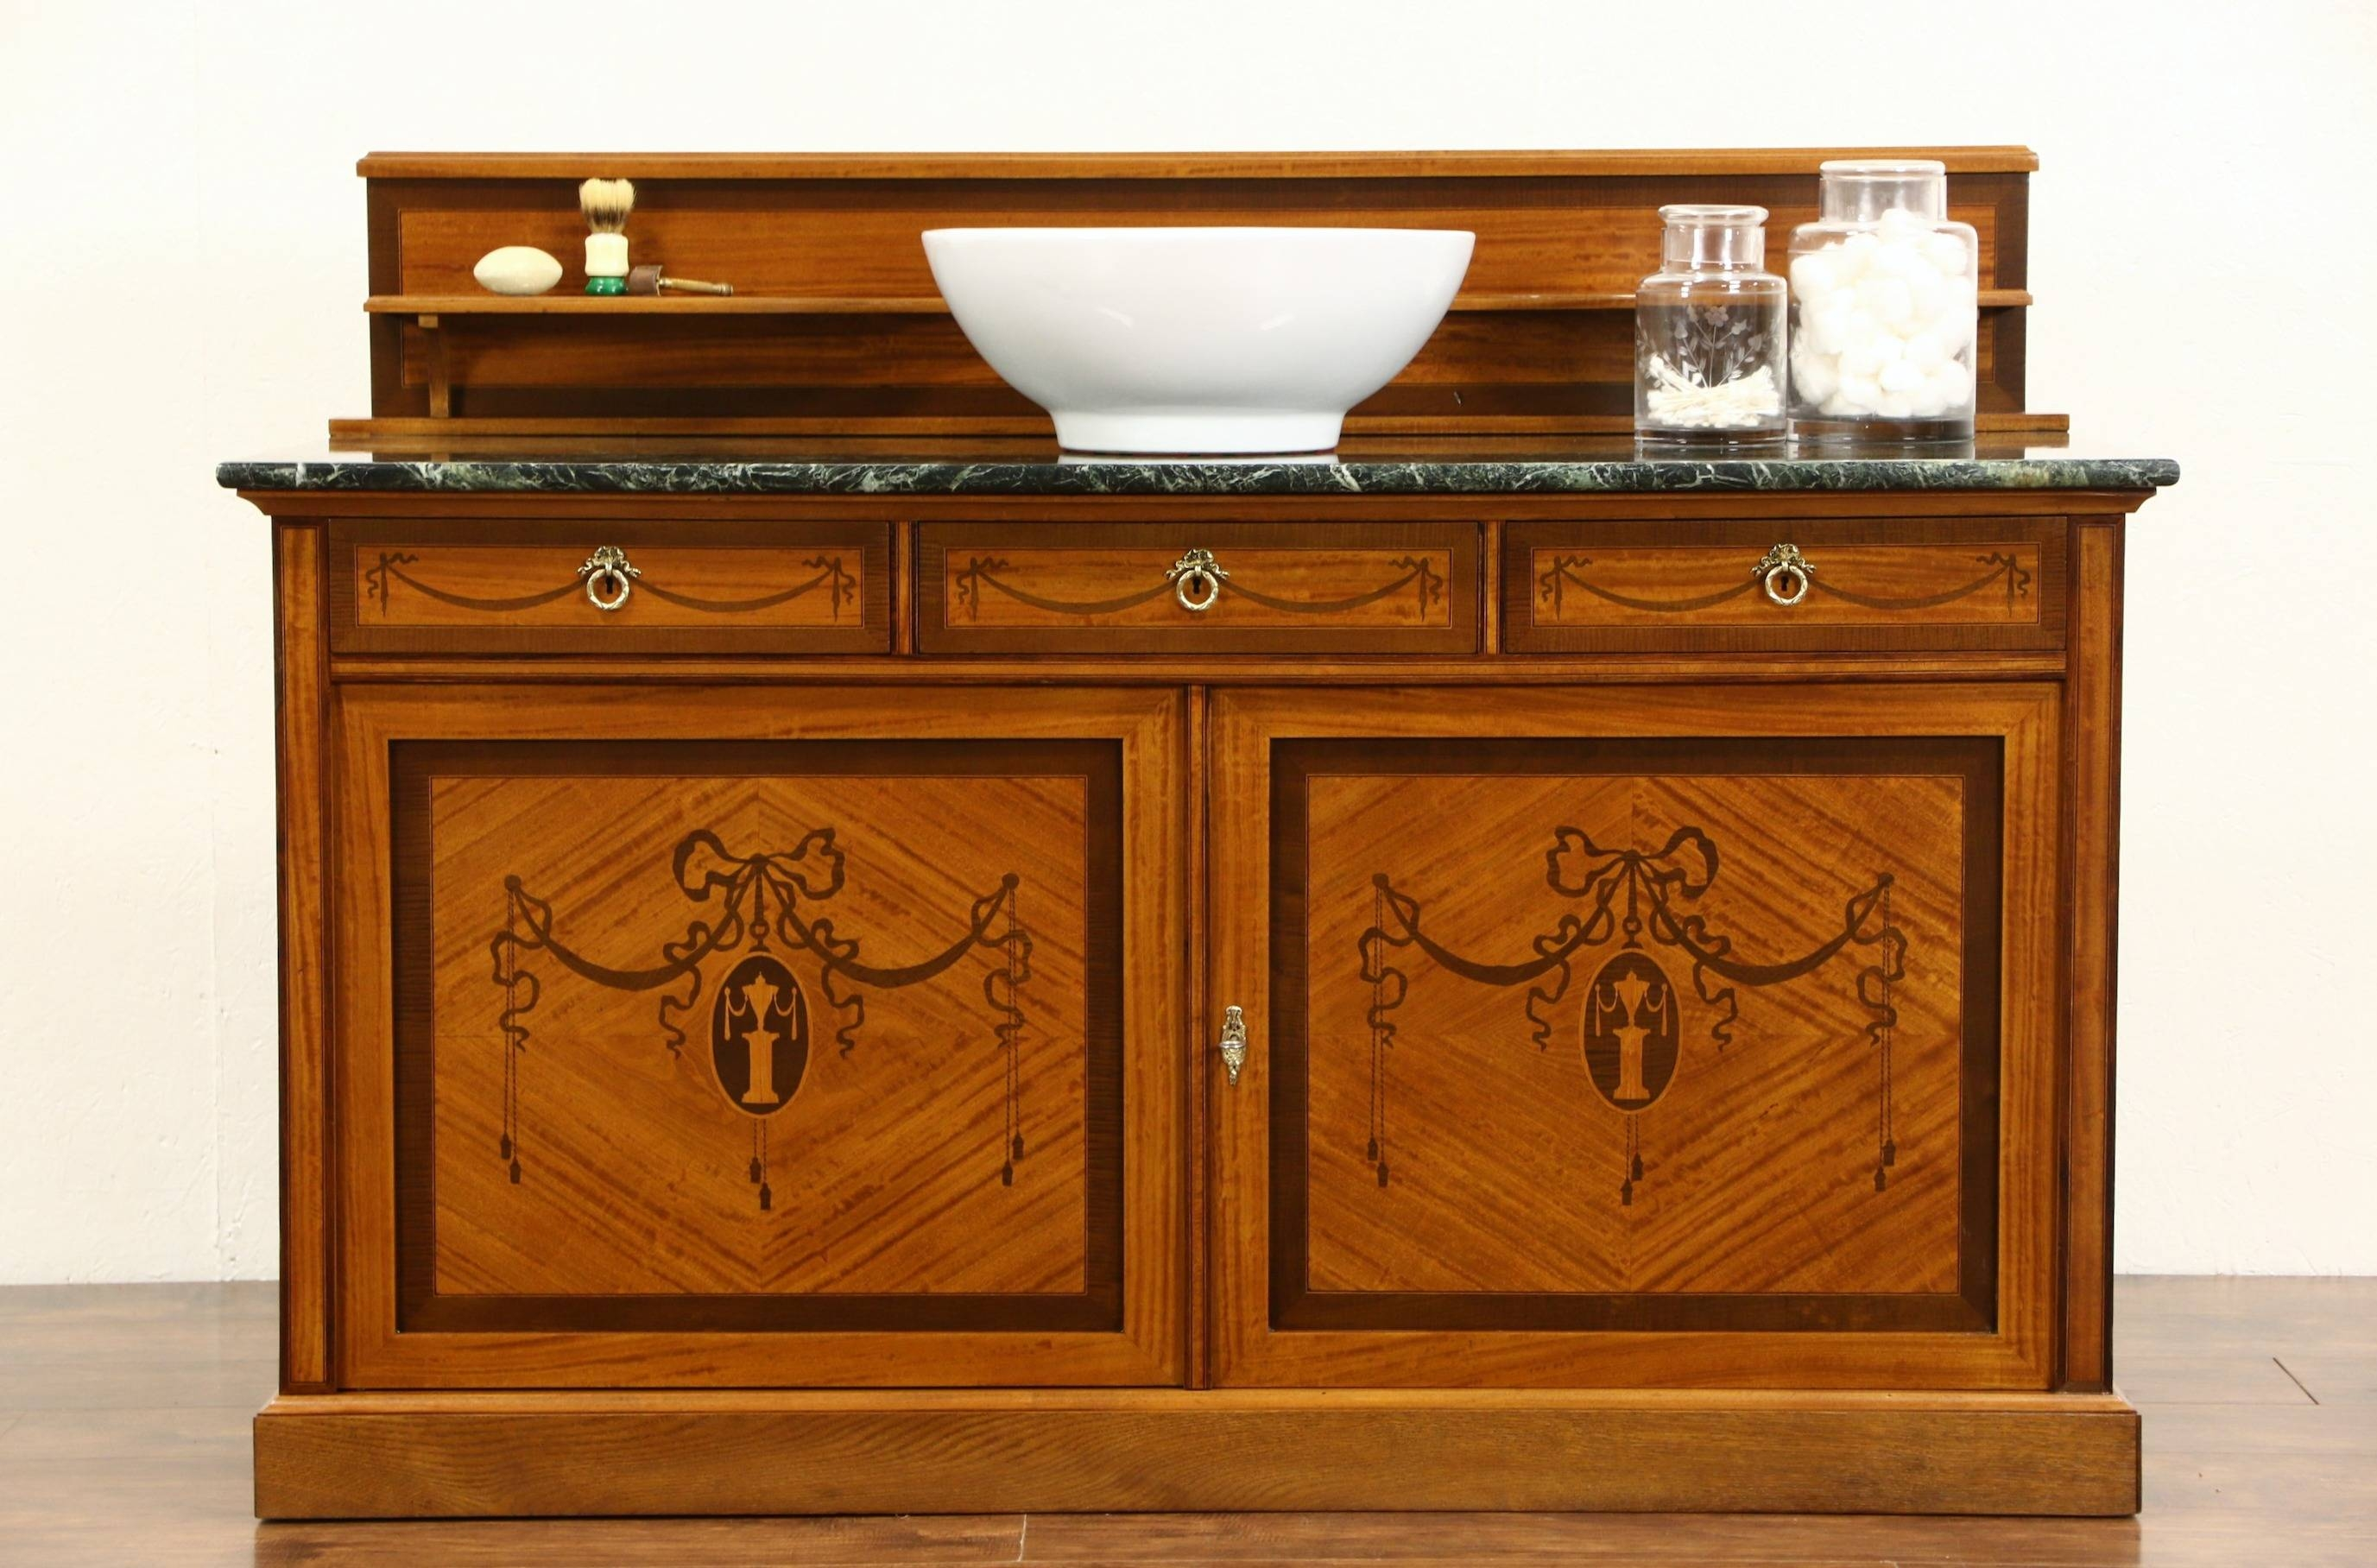 Sold - French 1915 Antique Marble Top Sideboard, Server, Bar Or with Antique Marble Top Sideboards (Image 11 of 15)